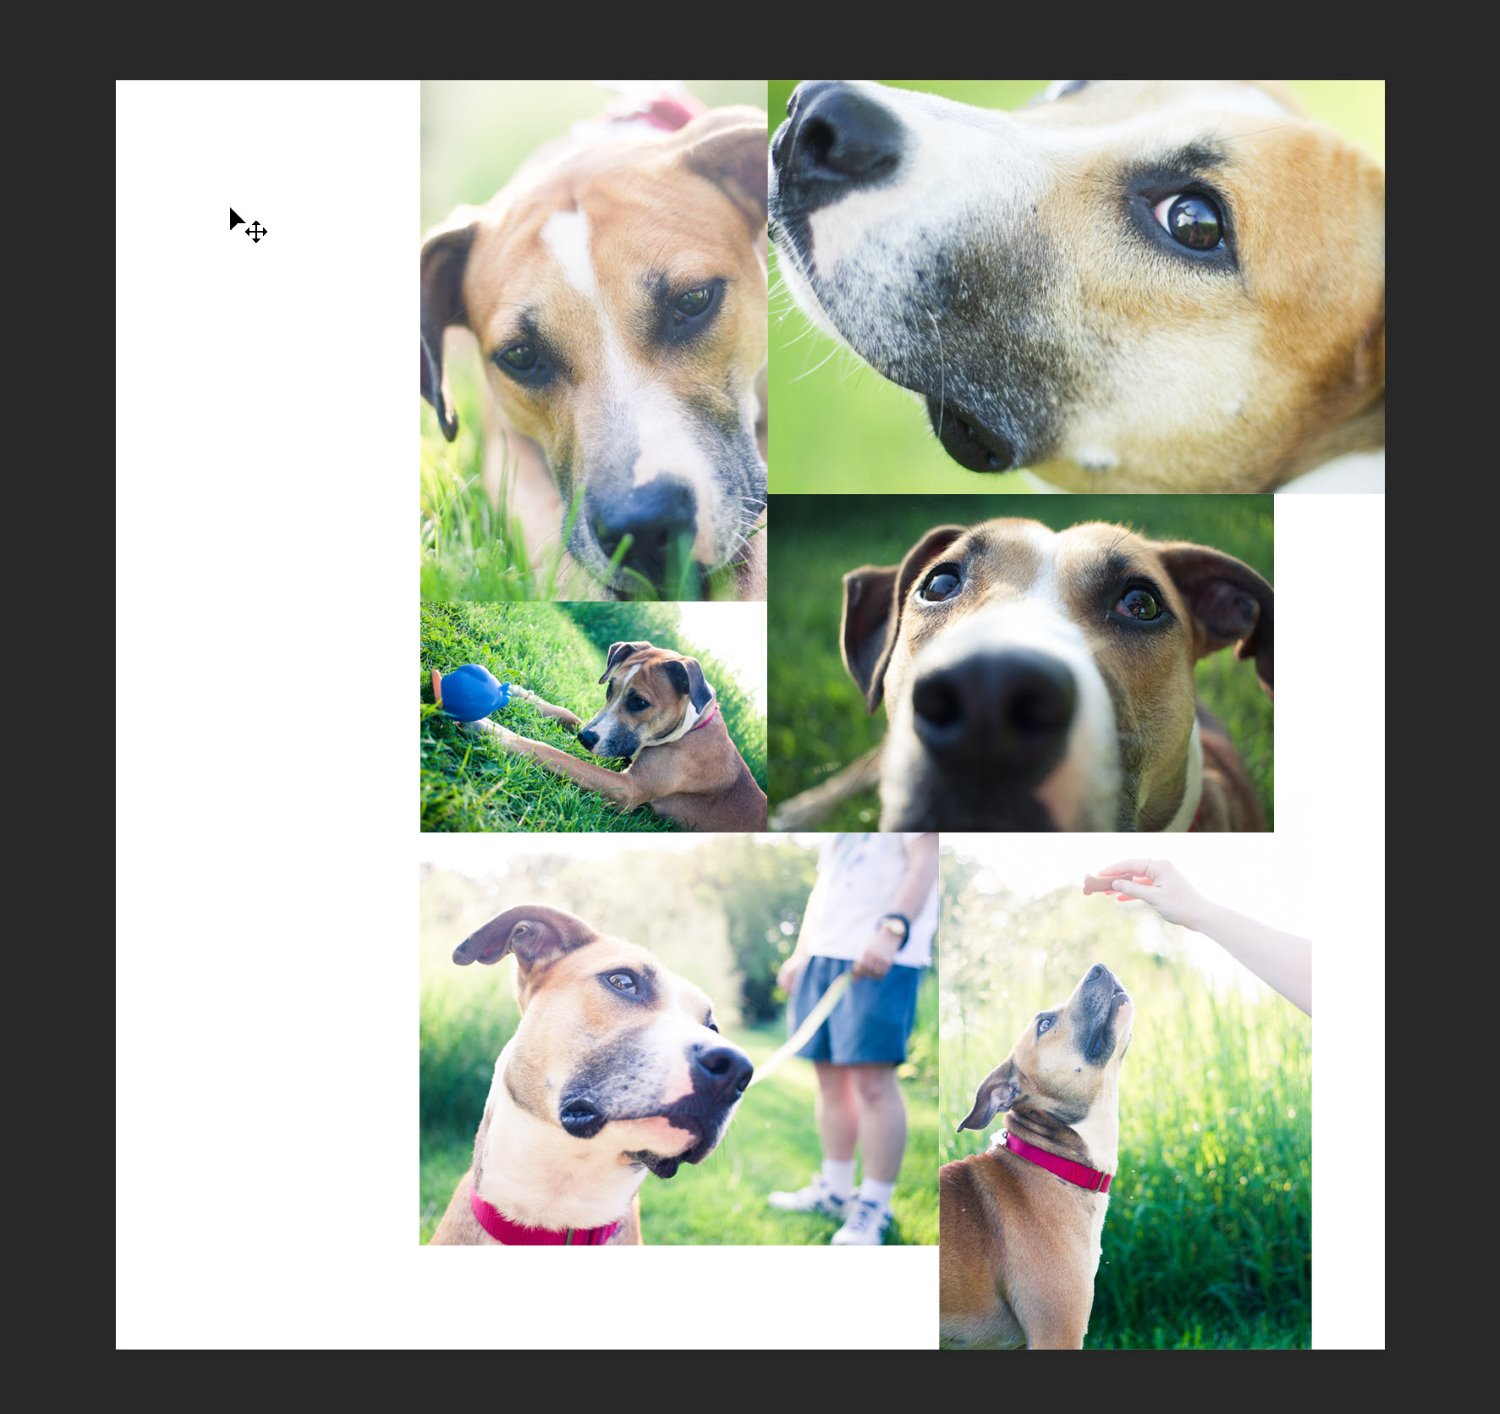 another version of the pet collage in Photoshop